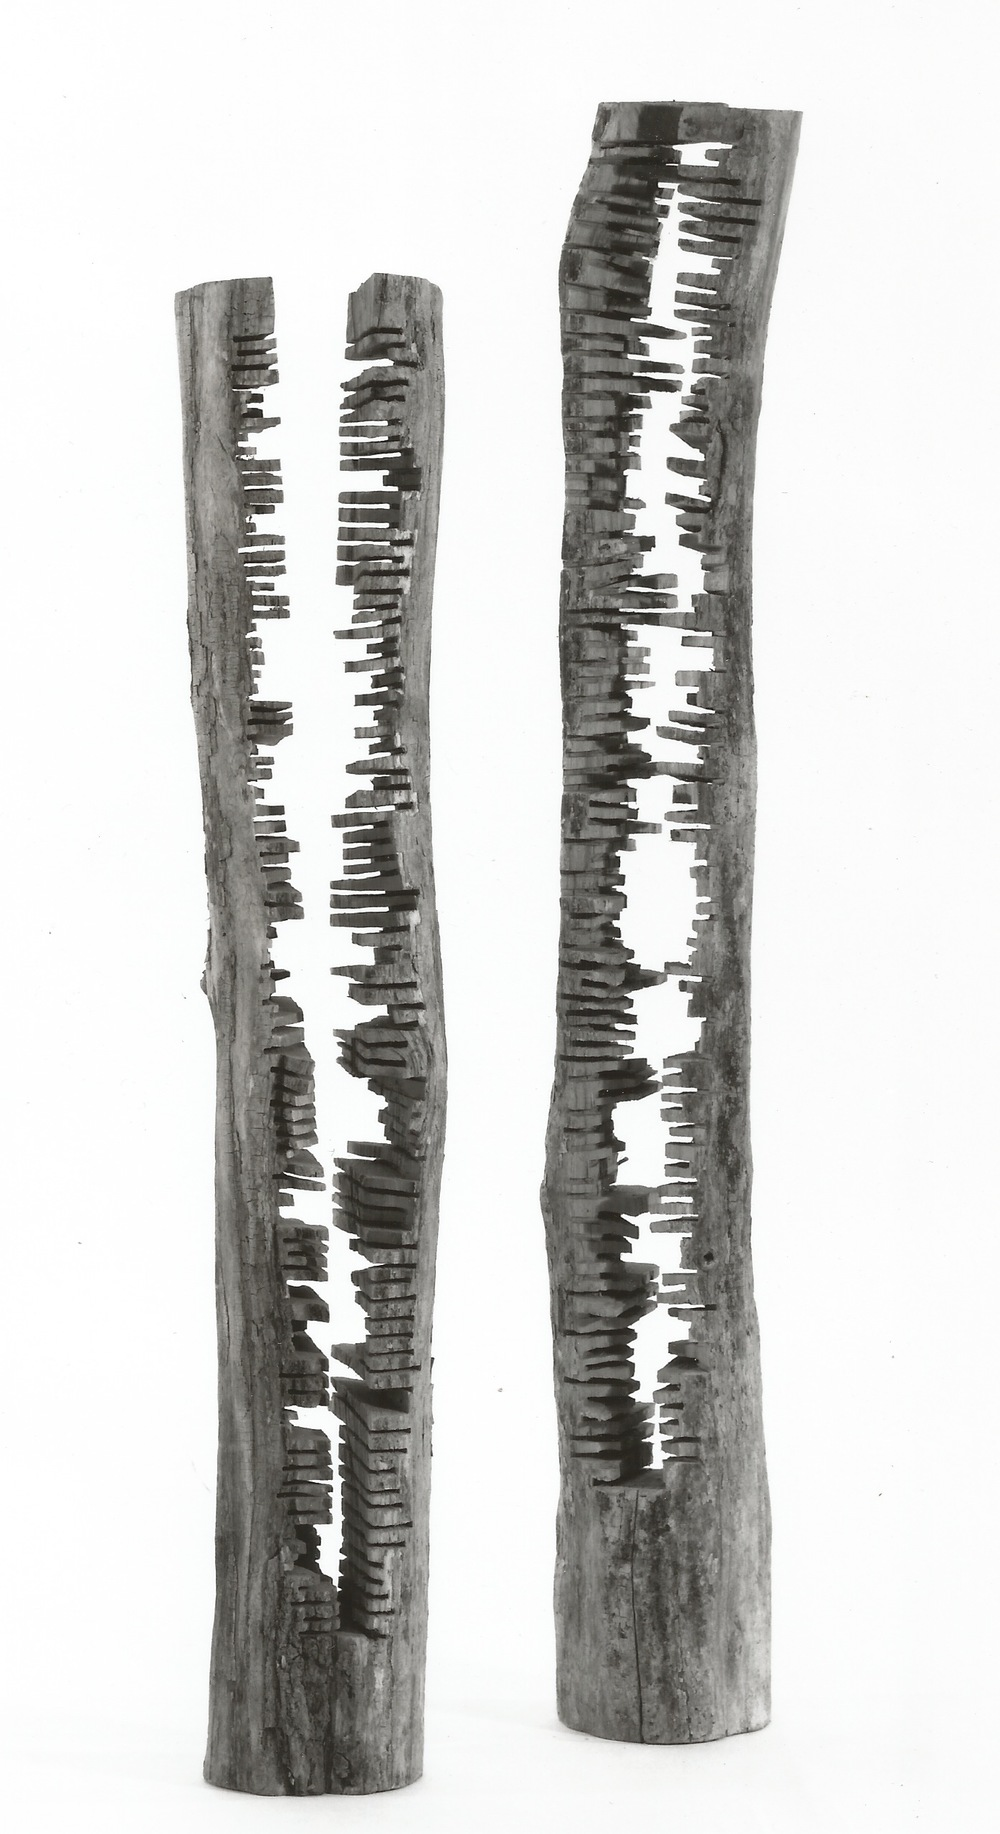 Totems , 1988, locust. Shorter: 77 inches in height, 14 inches in diameter; Taller: 88 inches in height, 11 inches in diameter.